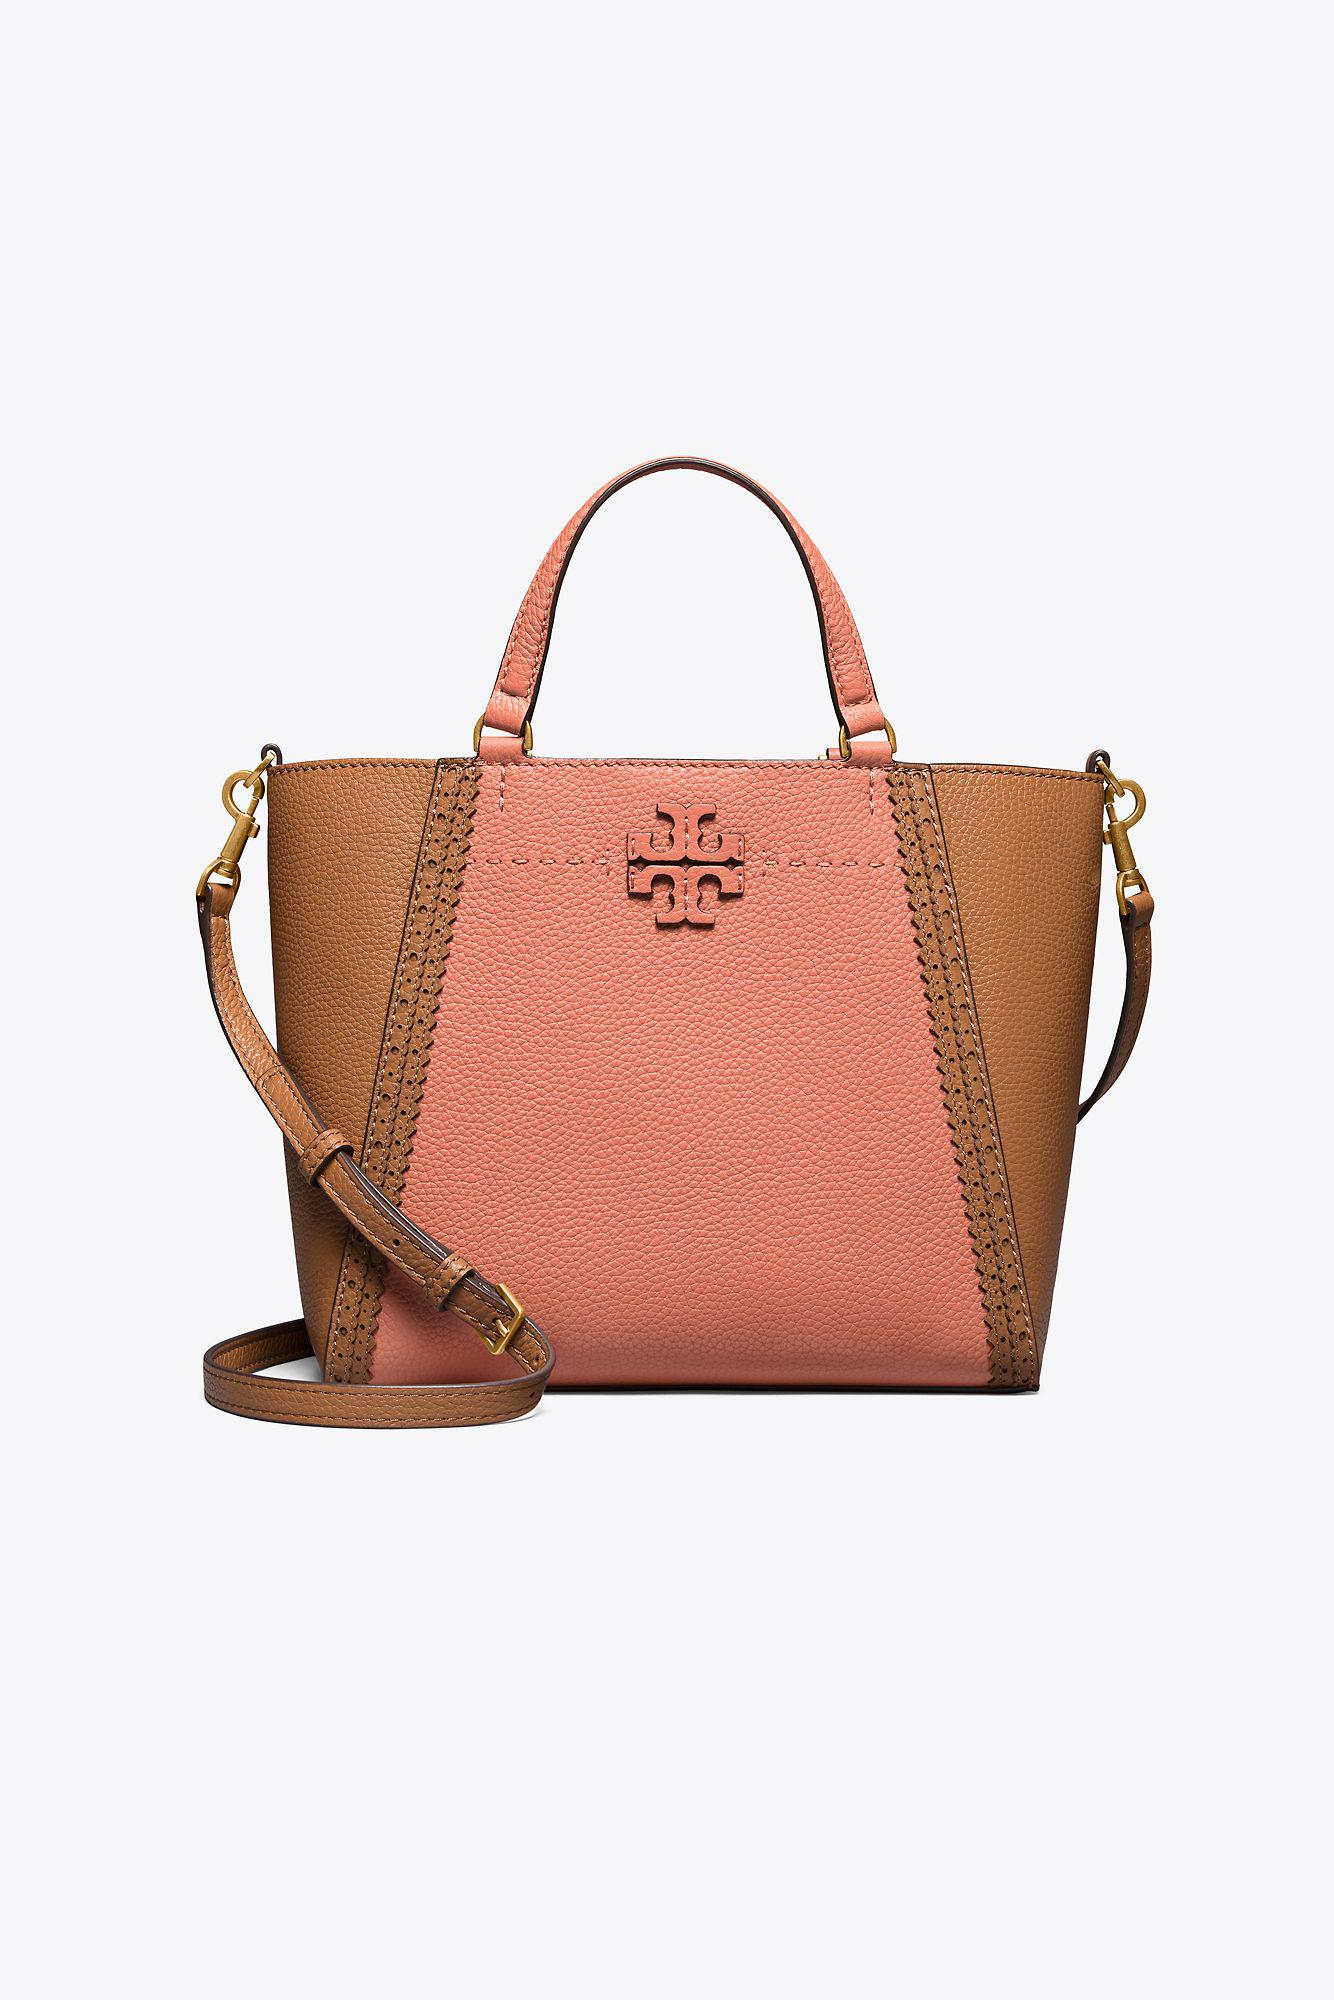 59ccb2166b2a Tory Burch - Multicolor Mcgraw Brogue Small Carryall - Lyst. View fullscreen